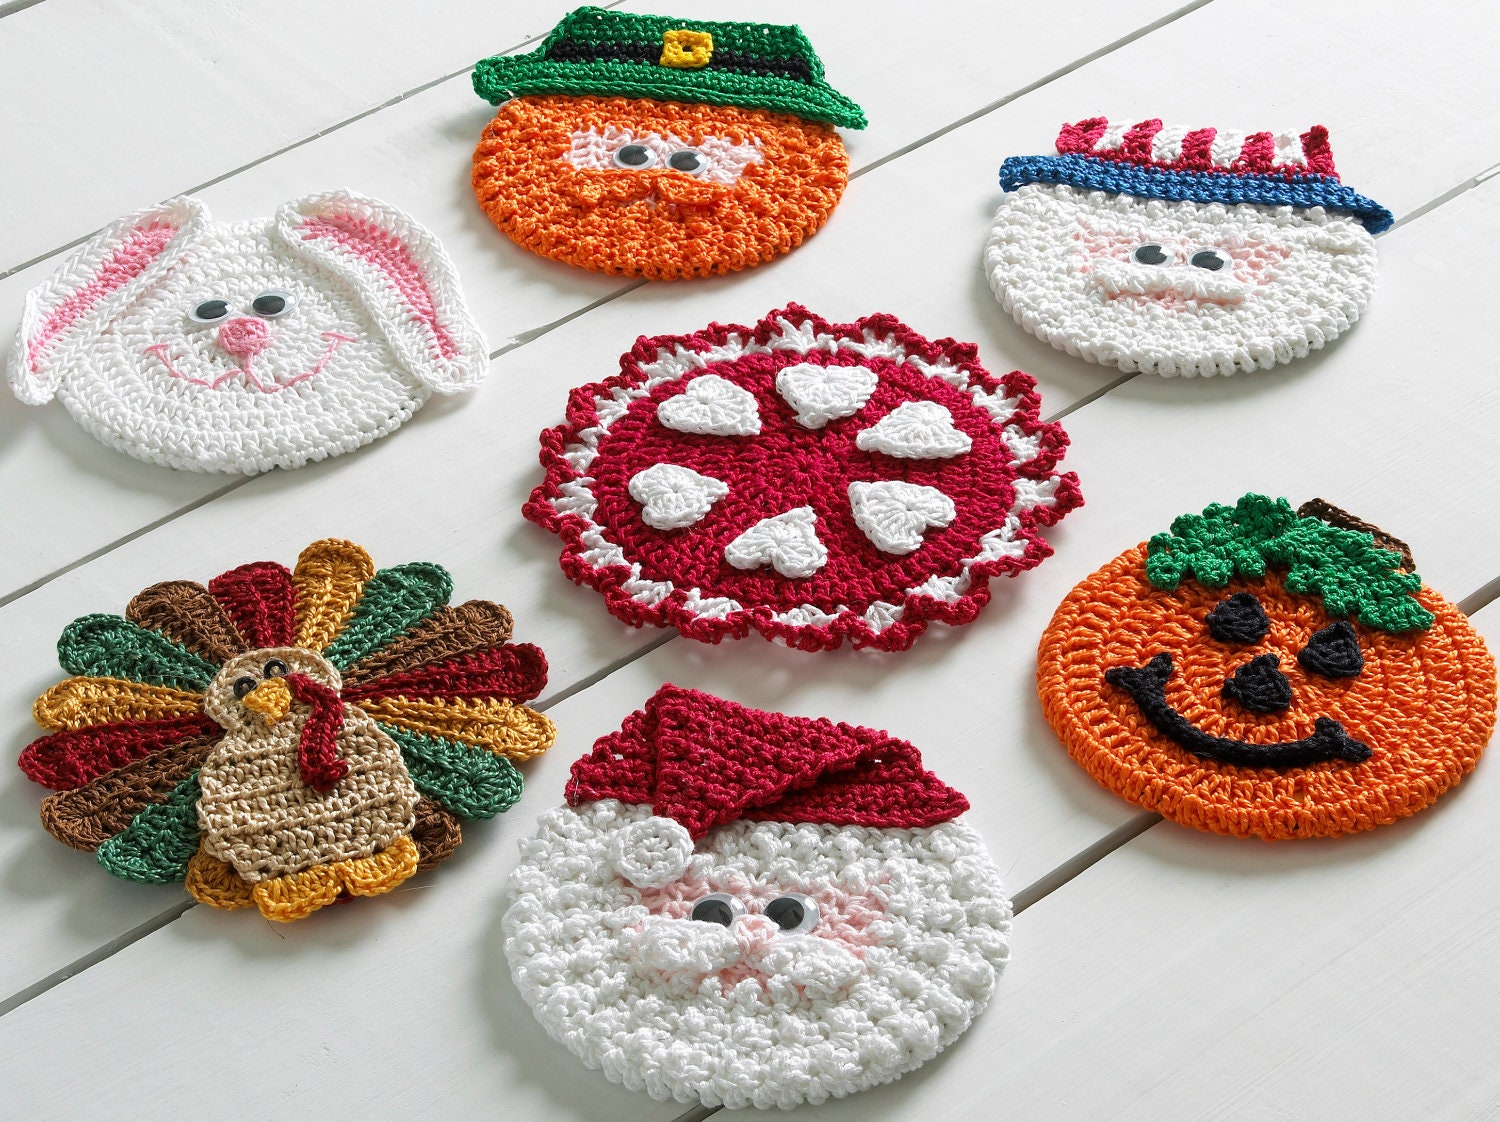 Free Crochet Santa Claus Coaster Pattern : Holiday CD Coasters Crochet Pattern PDF by Maggiescrochet ...